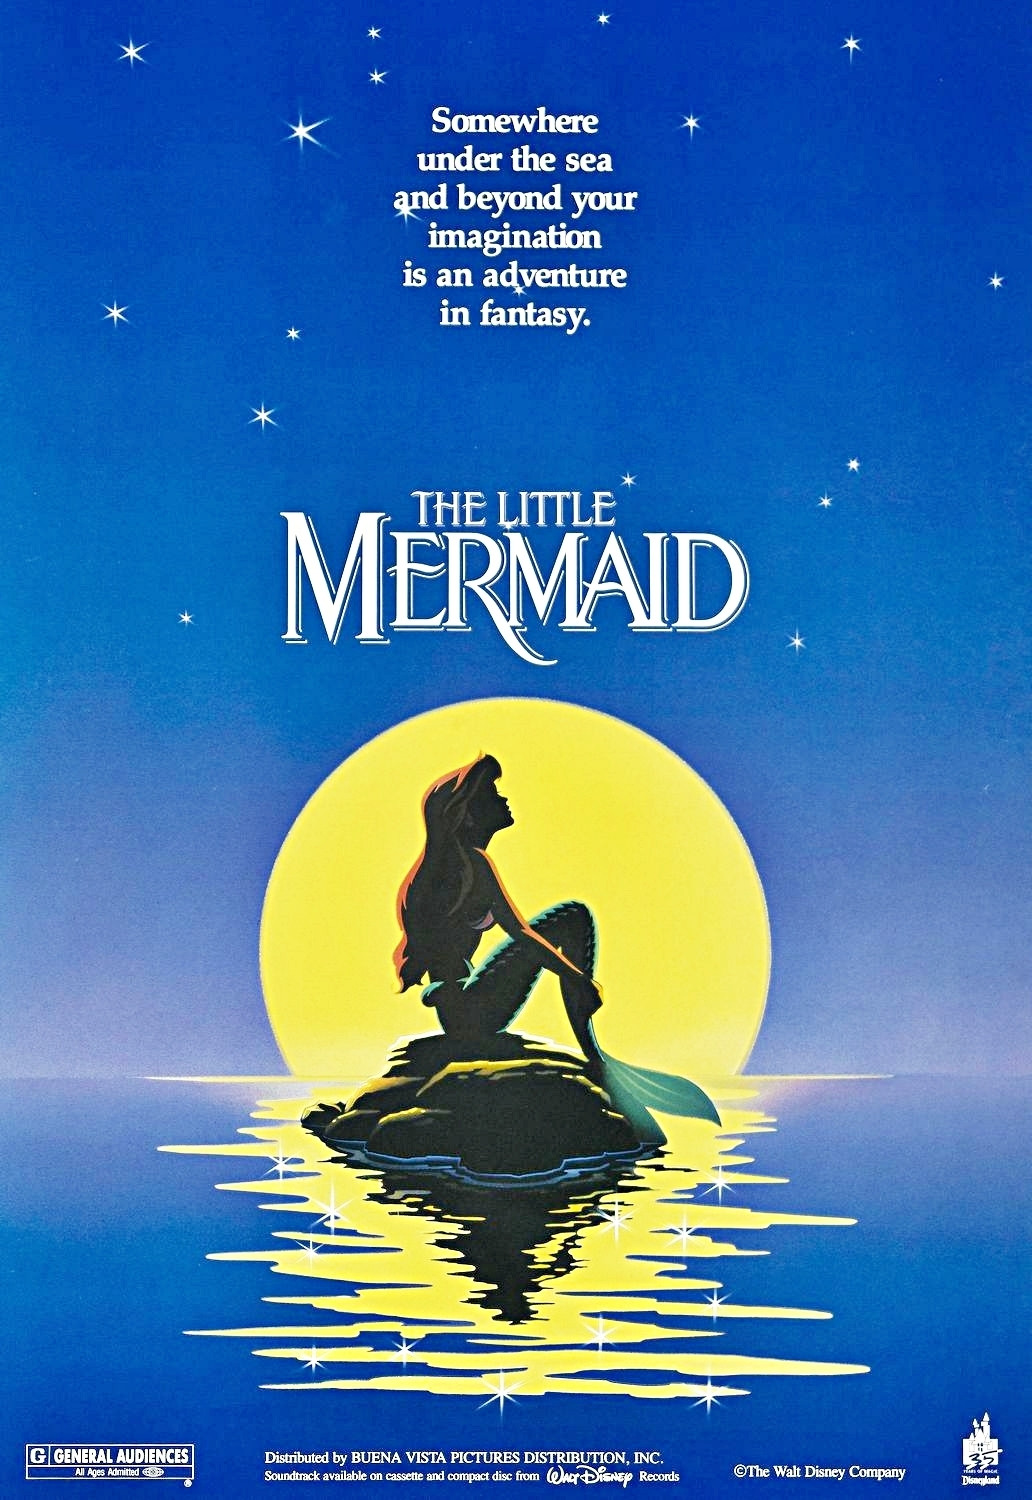 brilliantly designed posters of the Disney Renaissance The Little Mermaid